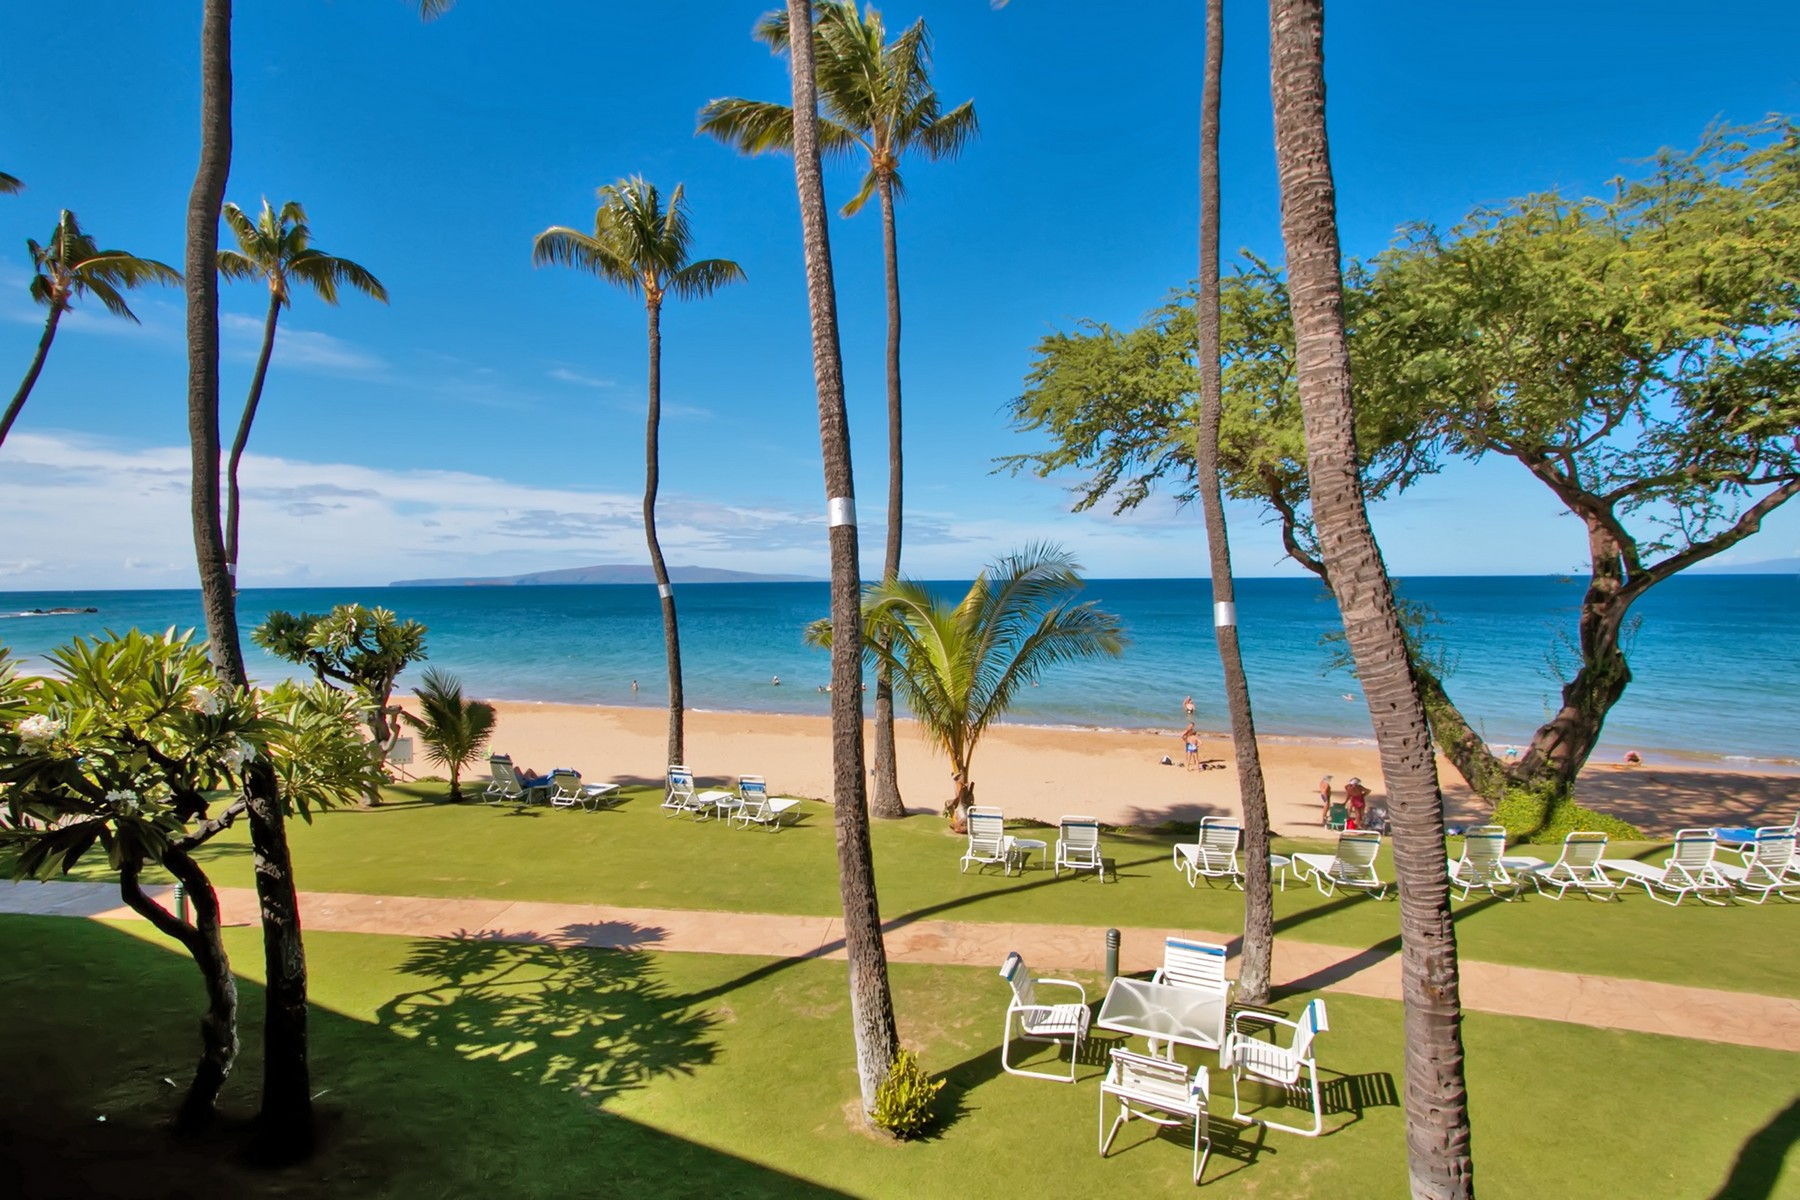 Condominium for Sale at Live Steps From a White Sandy Beach 2480 S Kihei Road, Hale Pau Hana #17 Kihei, Hawaii 96753 United States